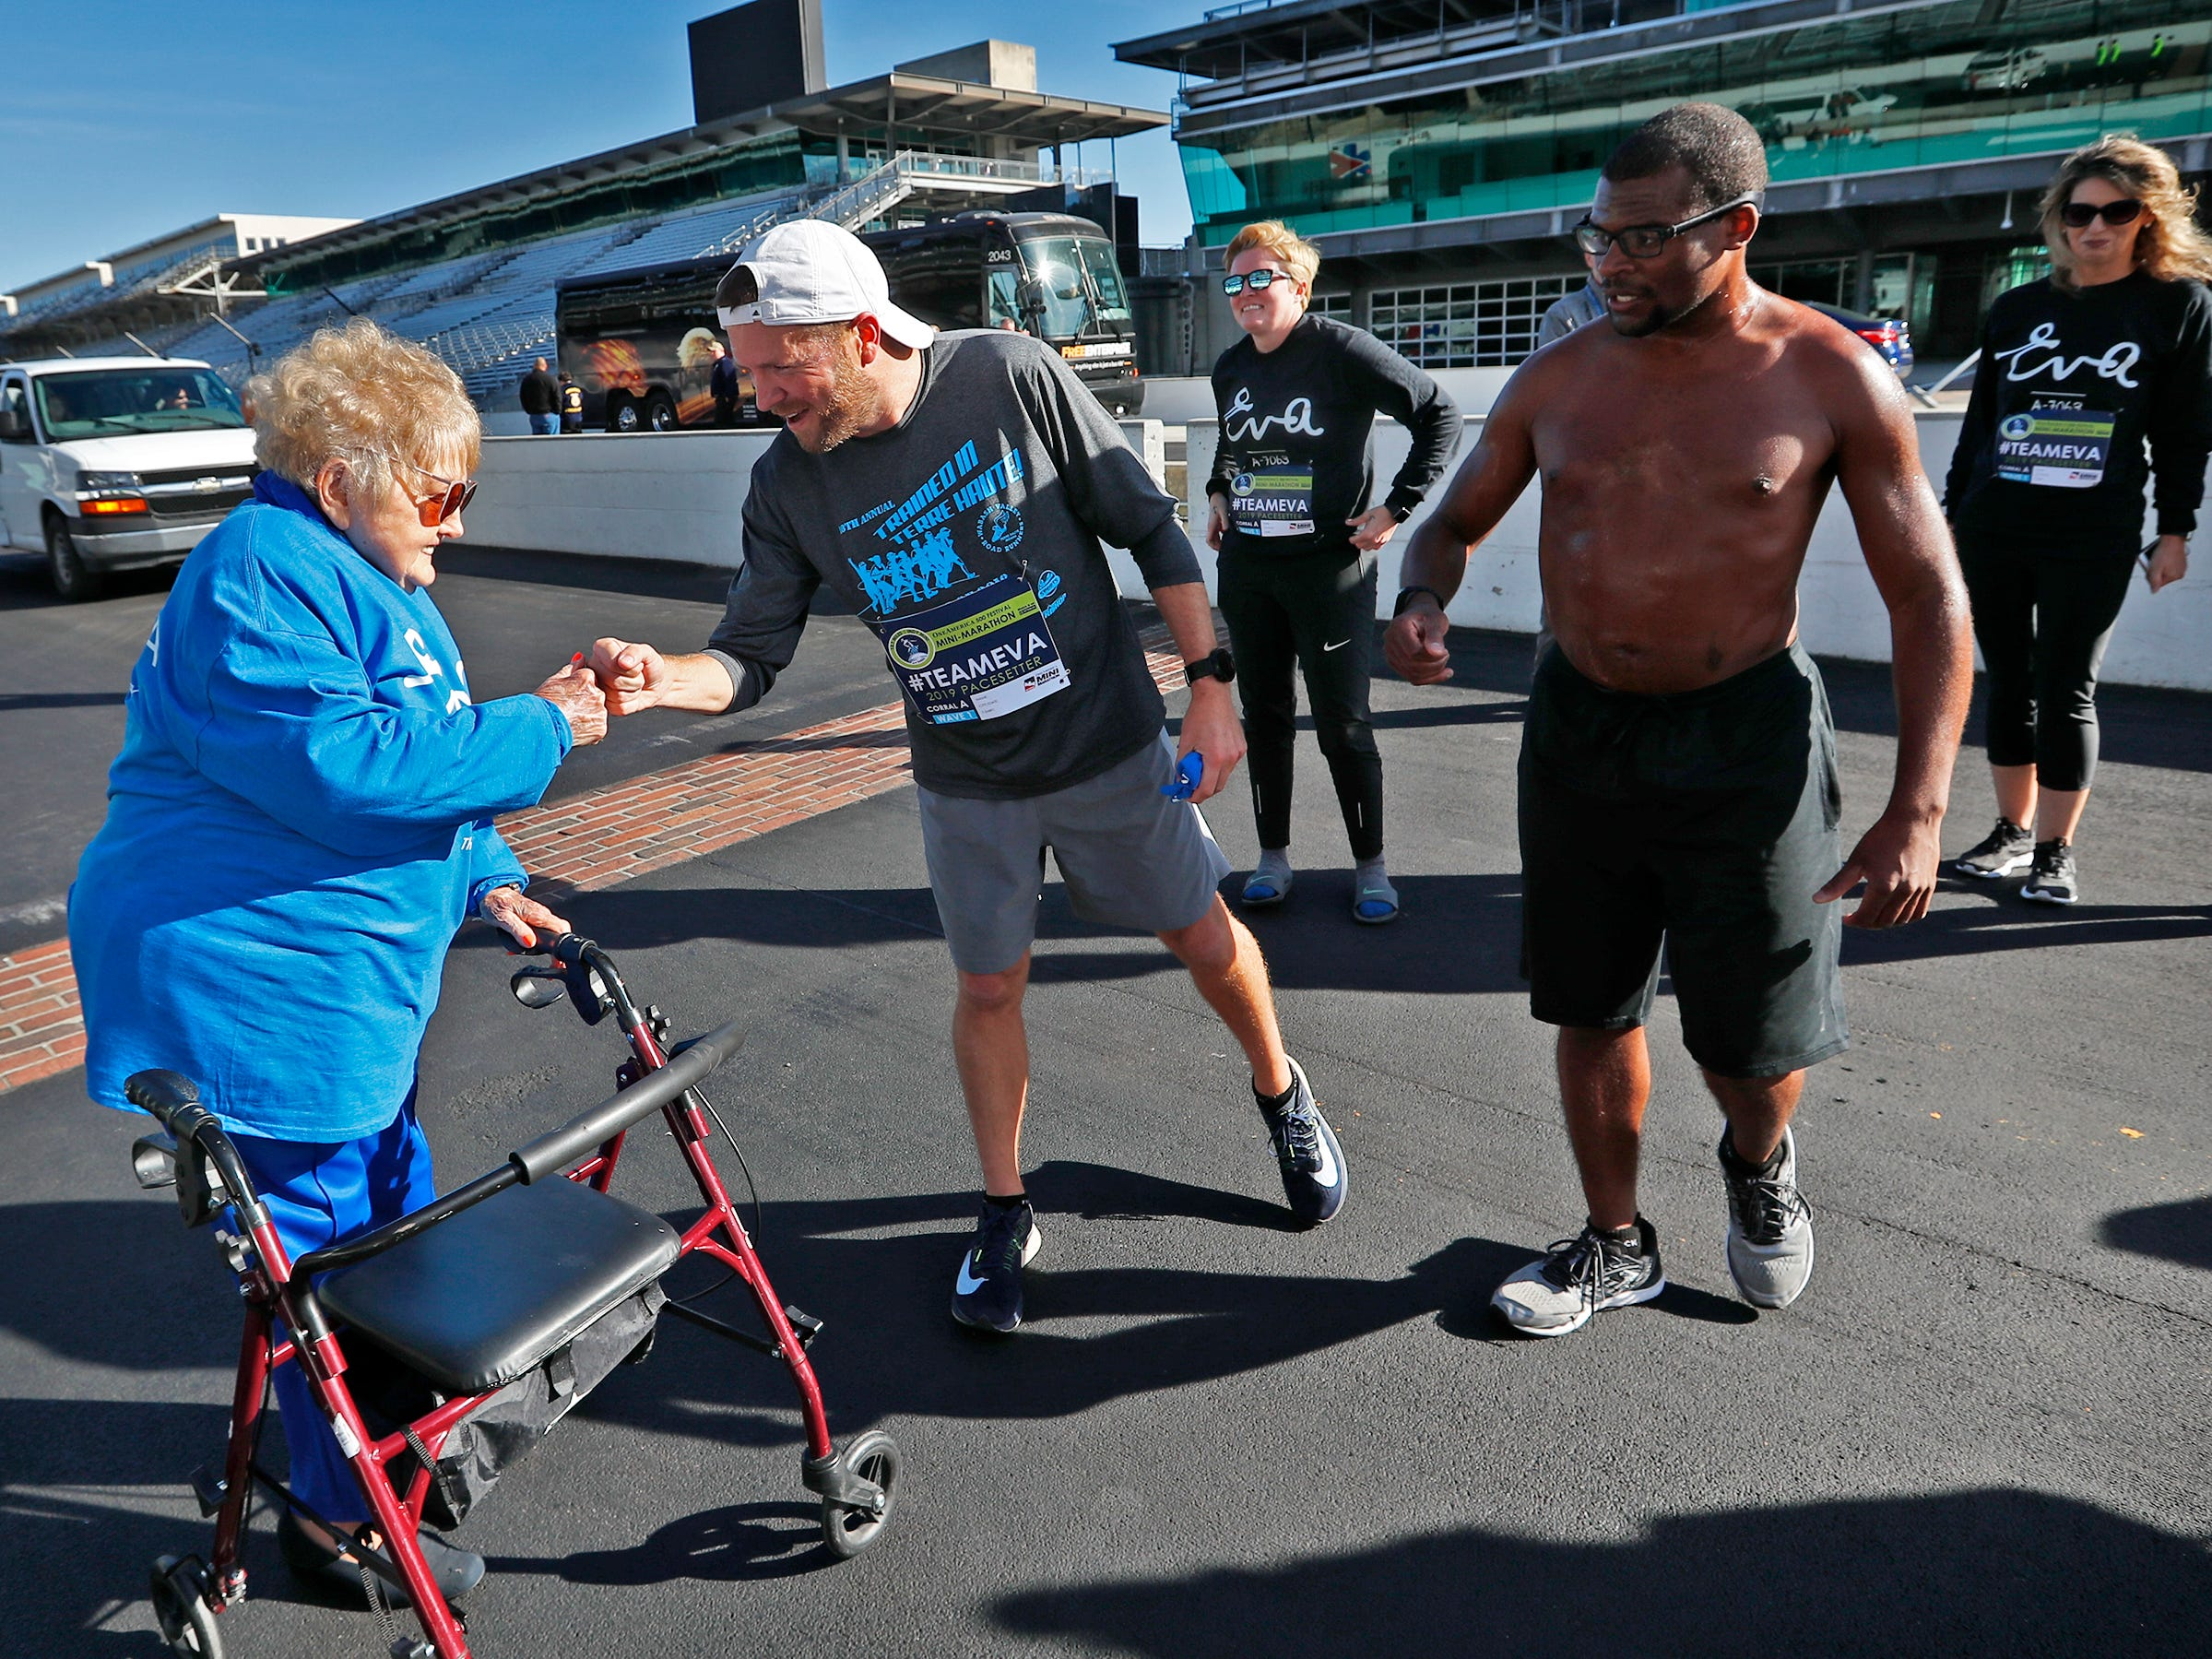 Holocaust survivor Eva Kor joins others at the Indianapolis Motor Speedway Yard of Bricks and welcomes runners, including Brad Chaney, center, and Andrew Peterson, Wednesday, Oct. 24, 2018, during the pace-setting run for the 2019 OneAmerica 500 Festival Mini-Marathon.  The 500 Festival will donate $1 to the CANDLES Holocaust Museum in Terre Haute for every mini-marathon participant who finishes the 2019 race in a better time than Team Eva.  Kor ran the very last of the relay race.